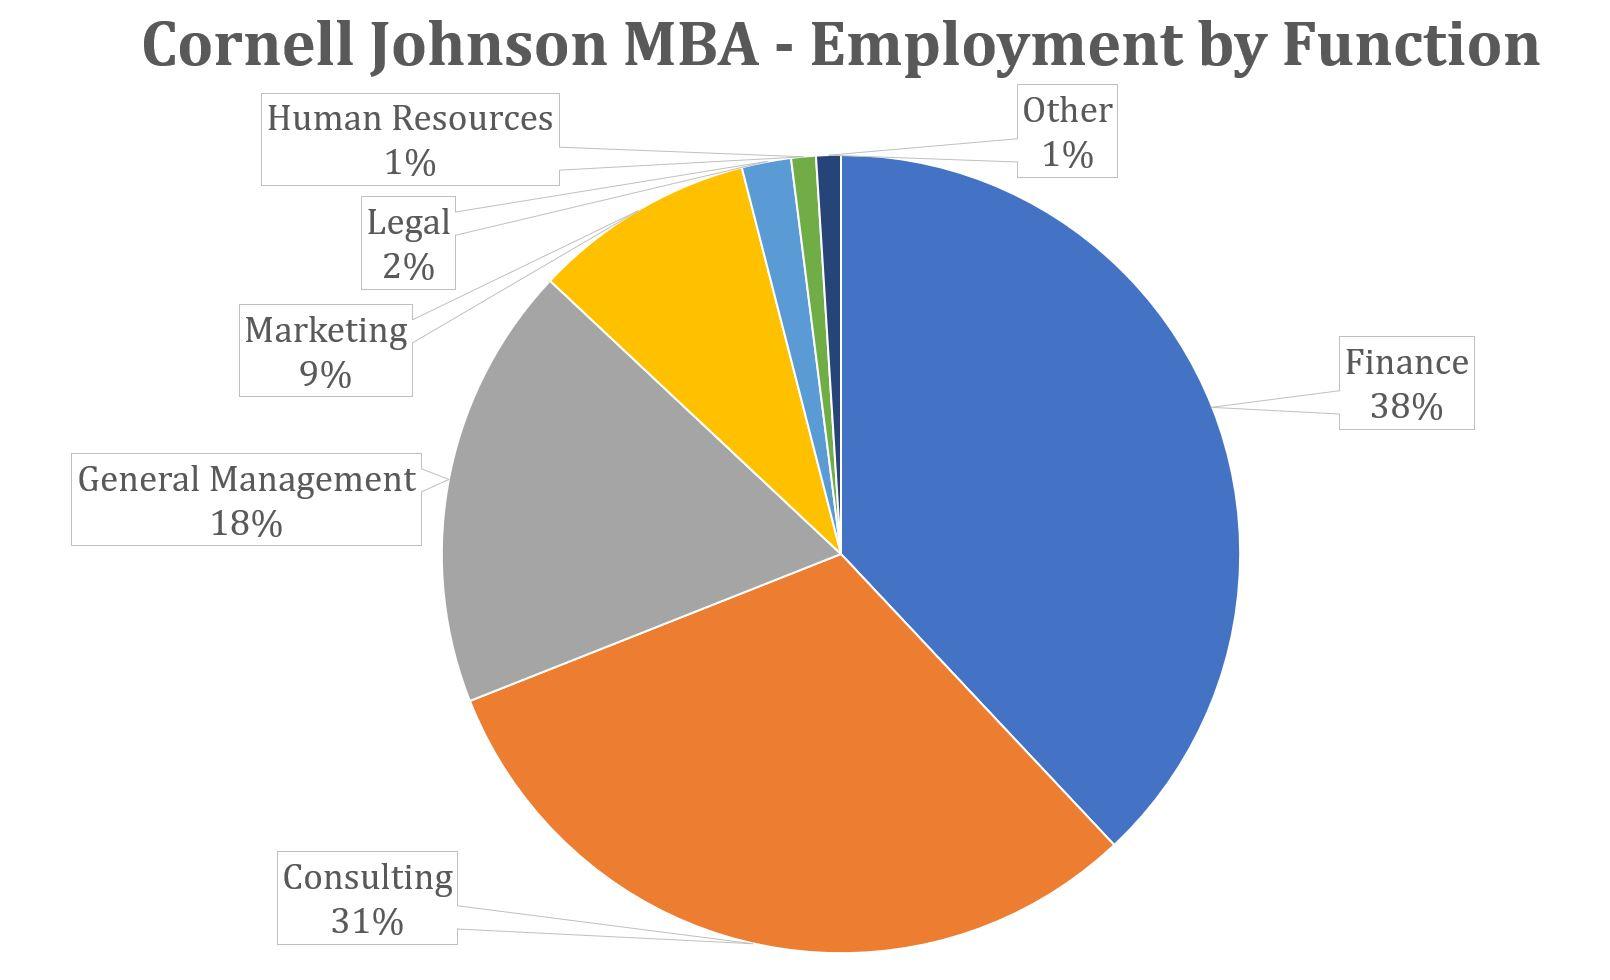 Cornell Johnson MBA - Employment by Function